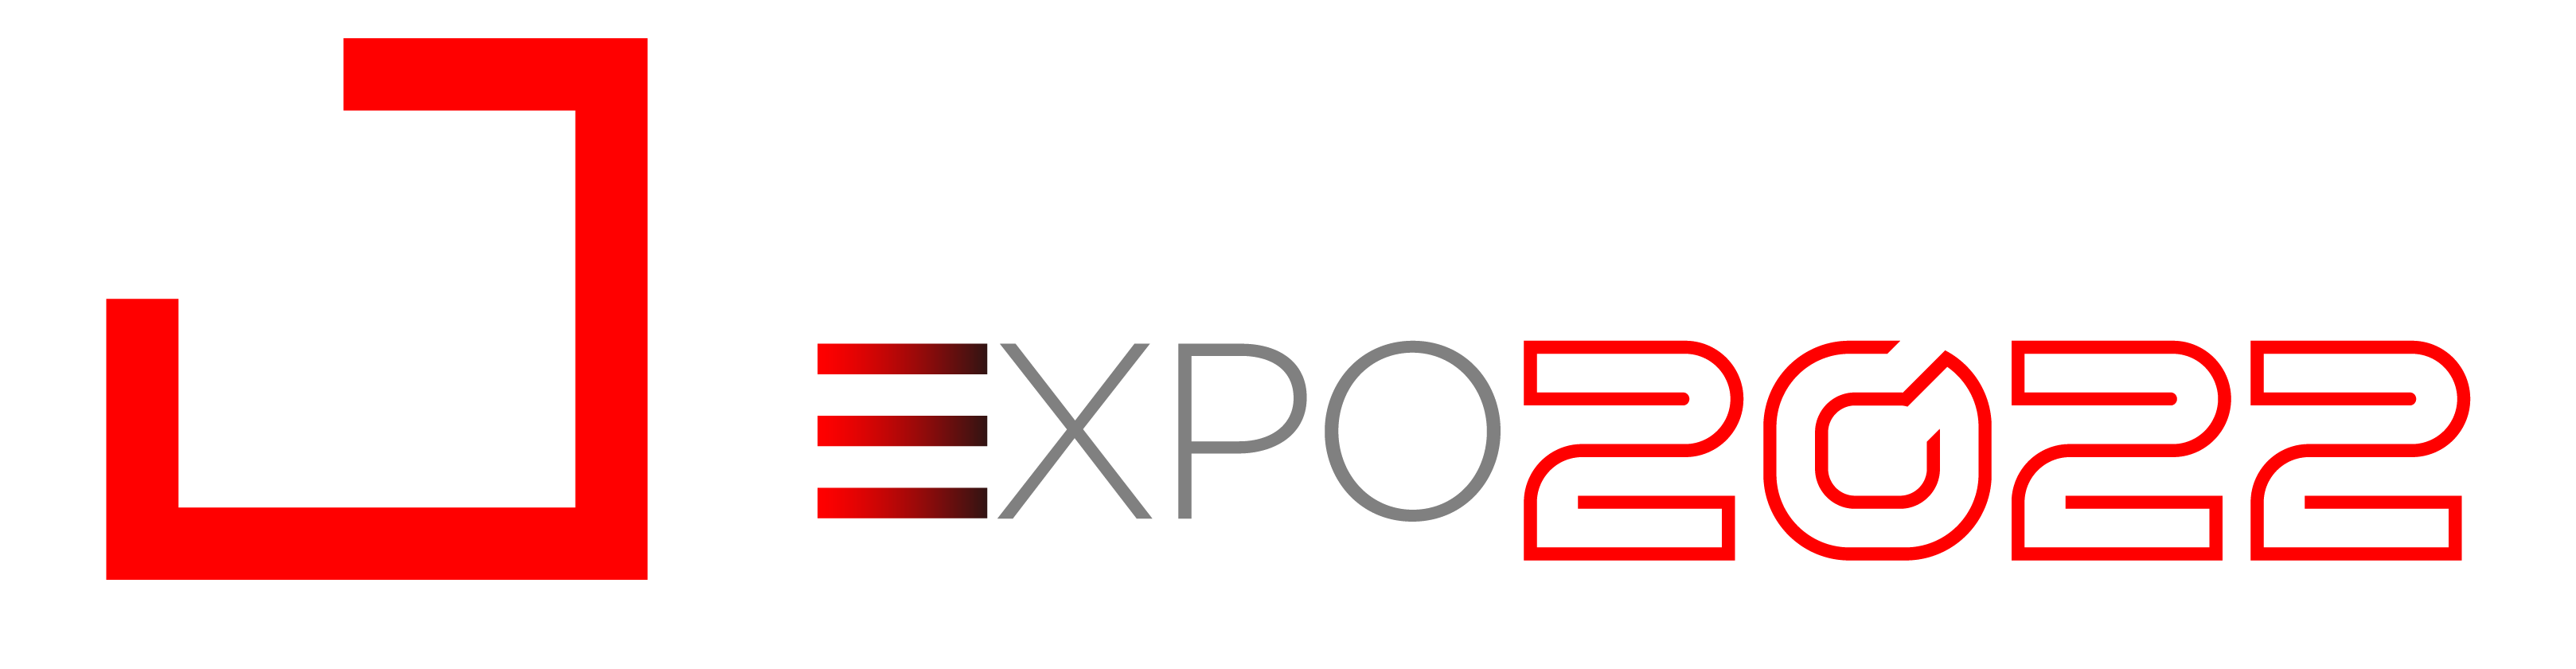 AUTOMATION EXPO 2022